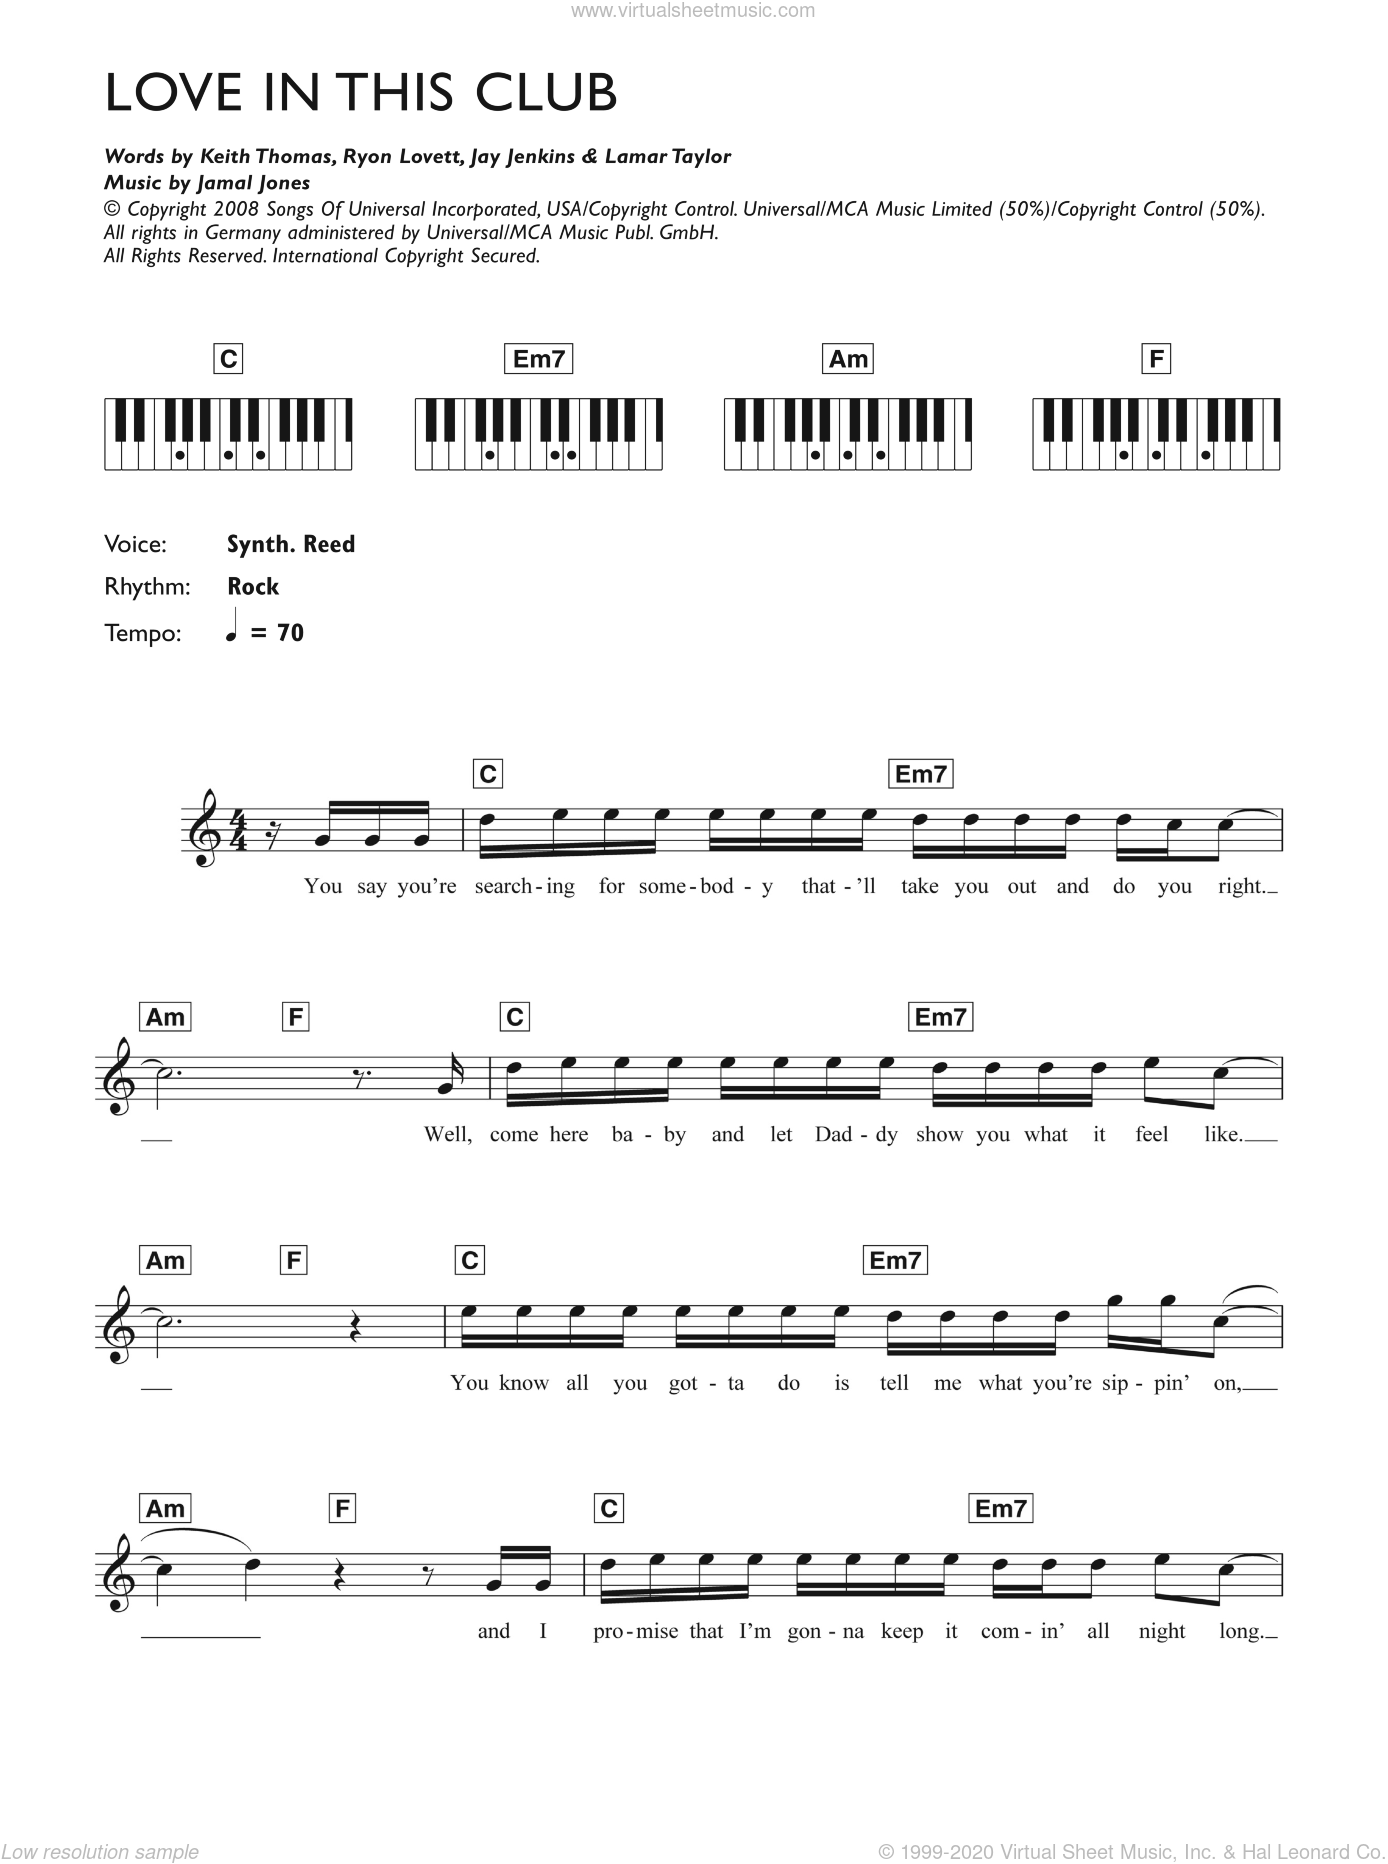 Love In This Club sheet music for piano solo (chords, lyrics, melody) by Gary Usher, Jamal Jones, Jay Jenkins, Keith Thomas, Lamar Taylor and Ryon Lovett, intermediate piano (chords, lyrics, melody)